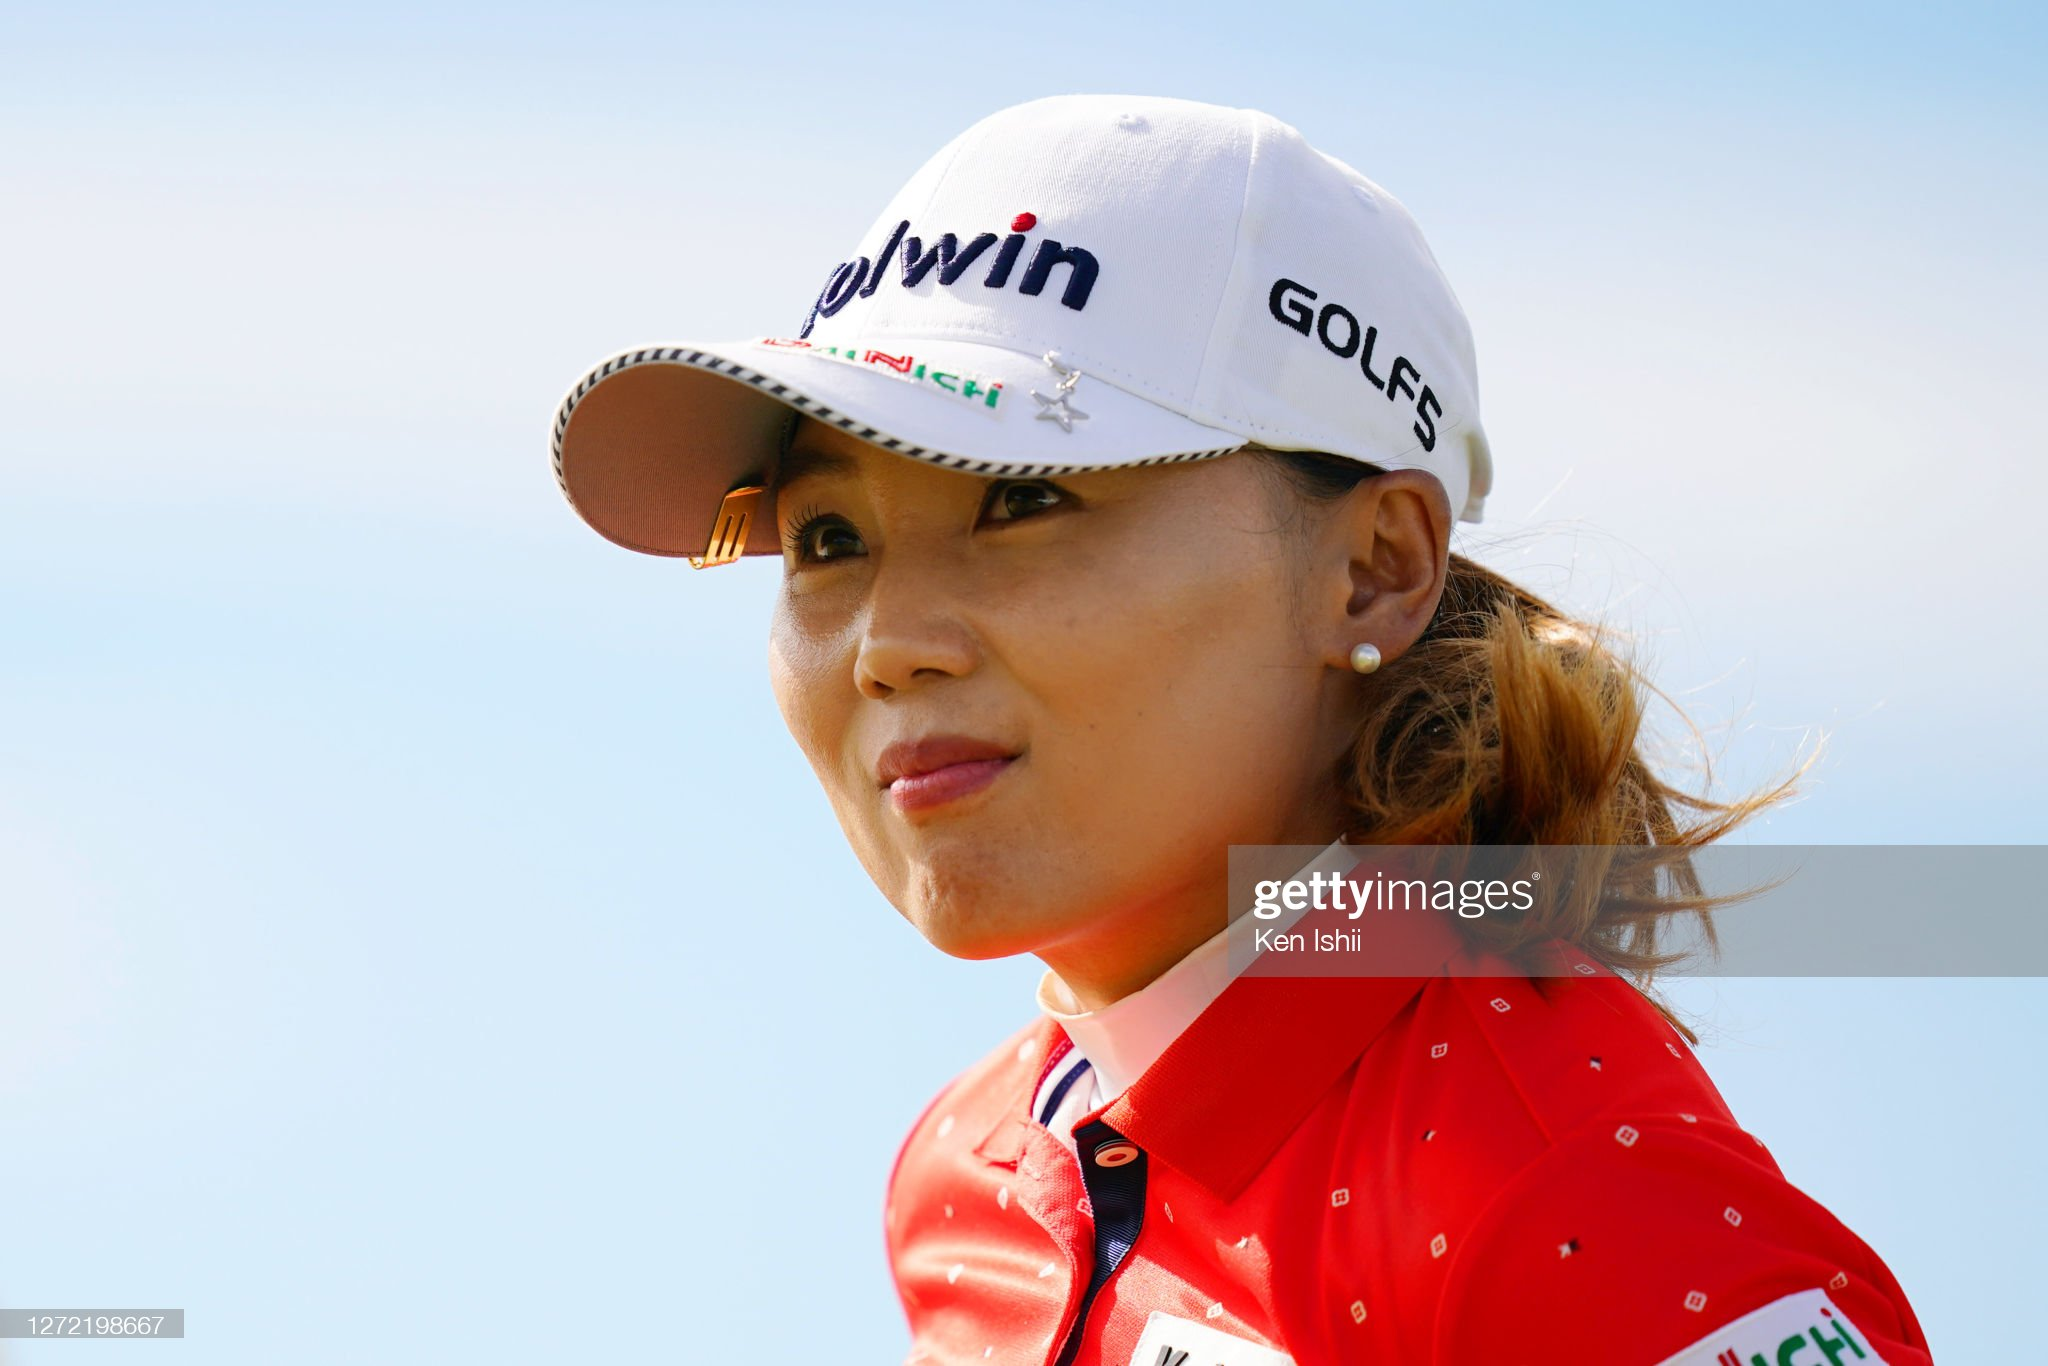 https://media.gettyimages.com/photos/nari-lee-of-south-korea-reacts-after-holing-out-on-the-18th-green-picture-id1272198667?s=2048x2048